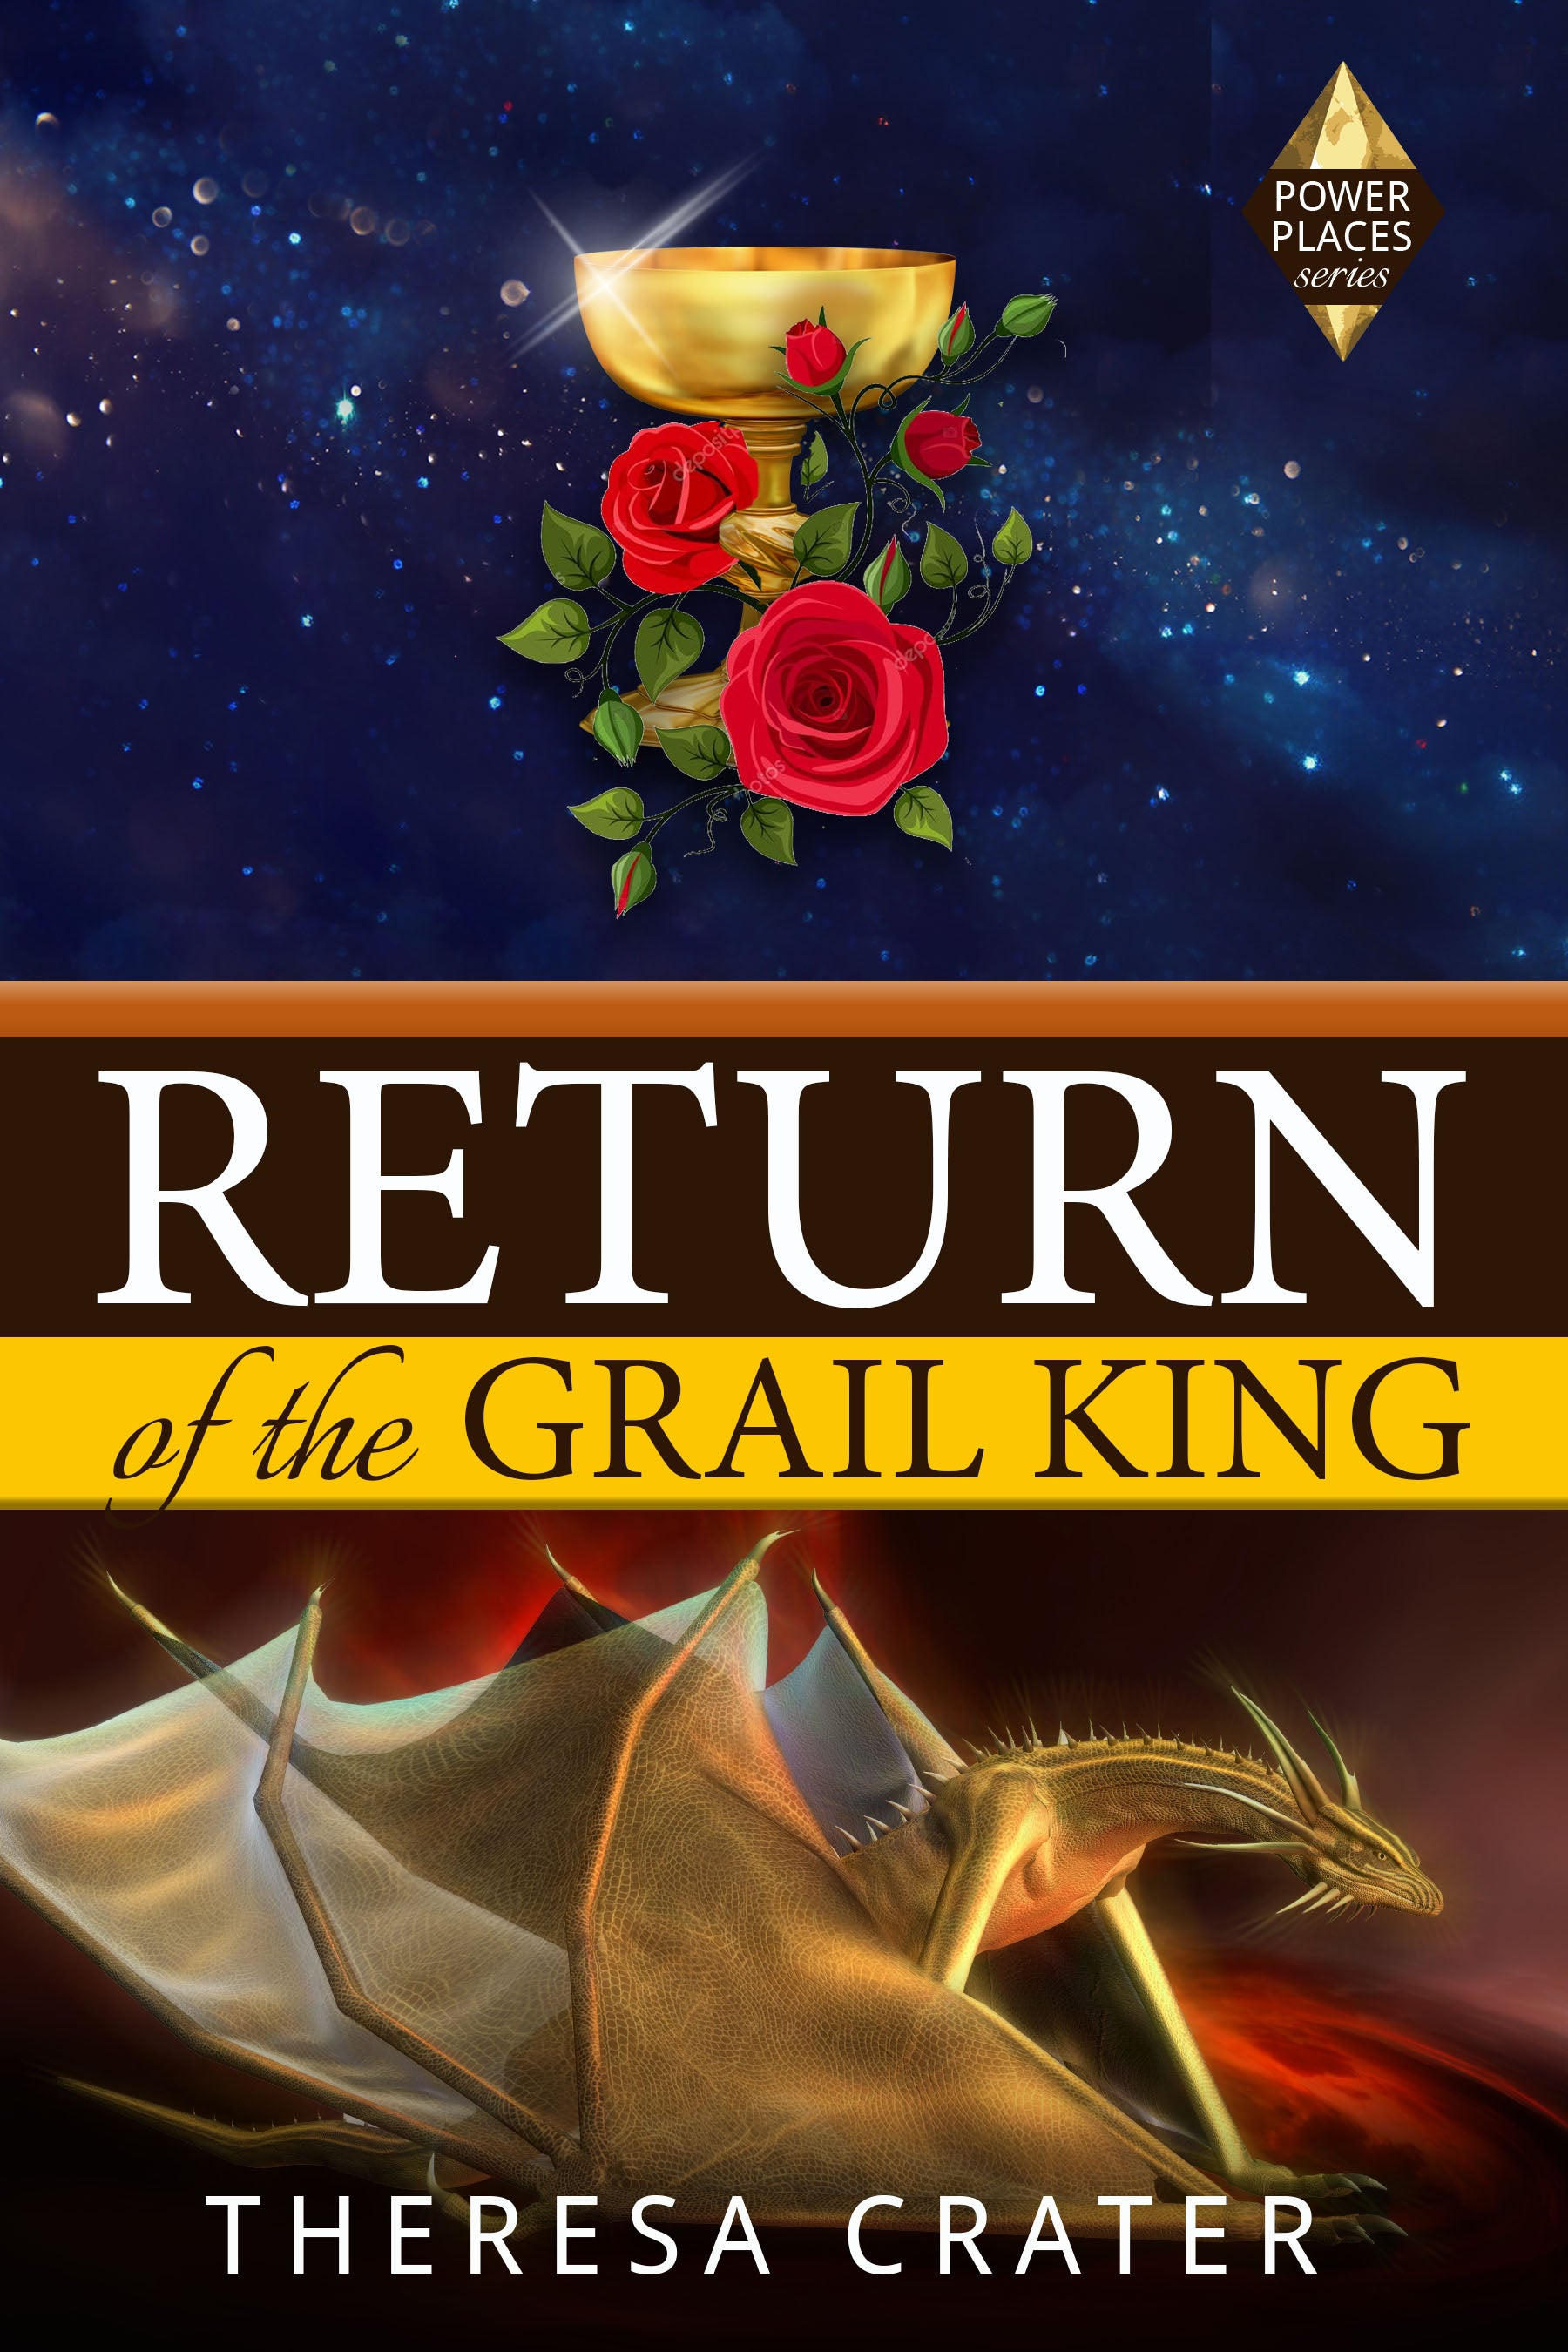 Return of the Grail King